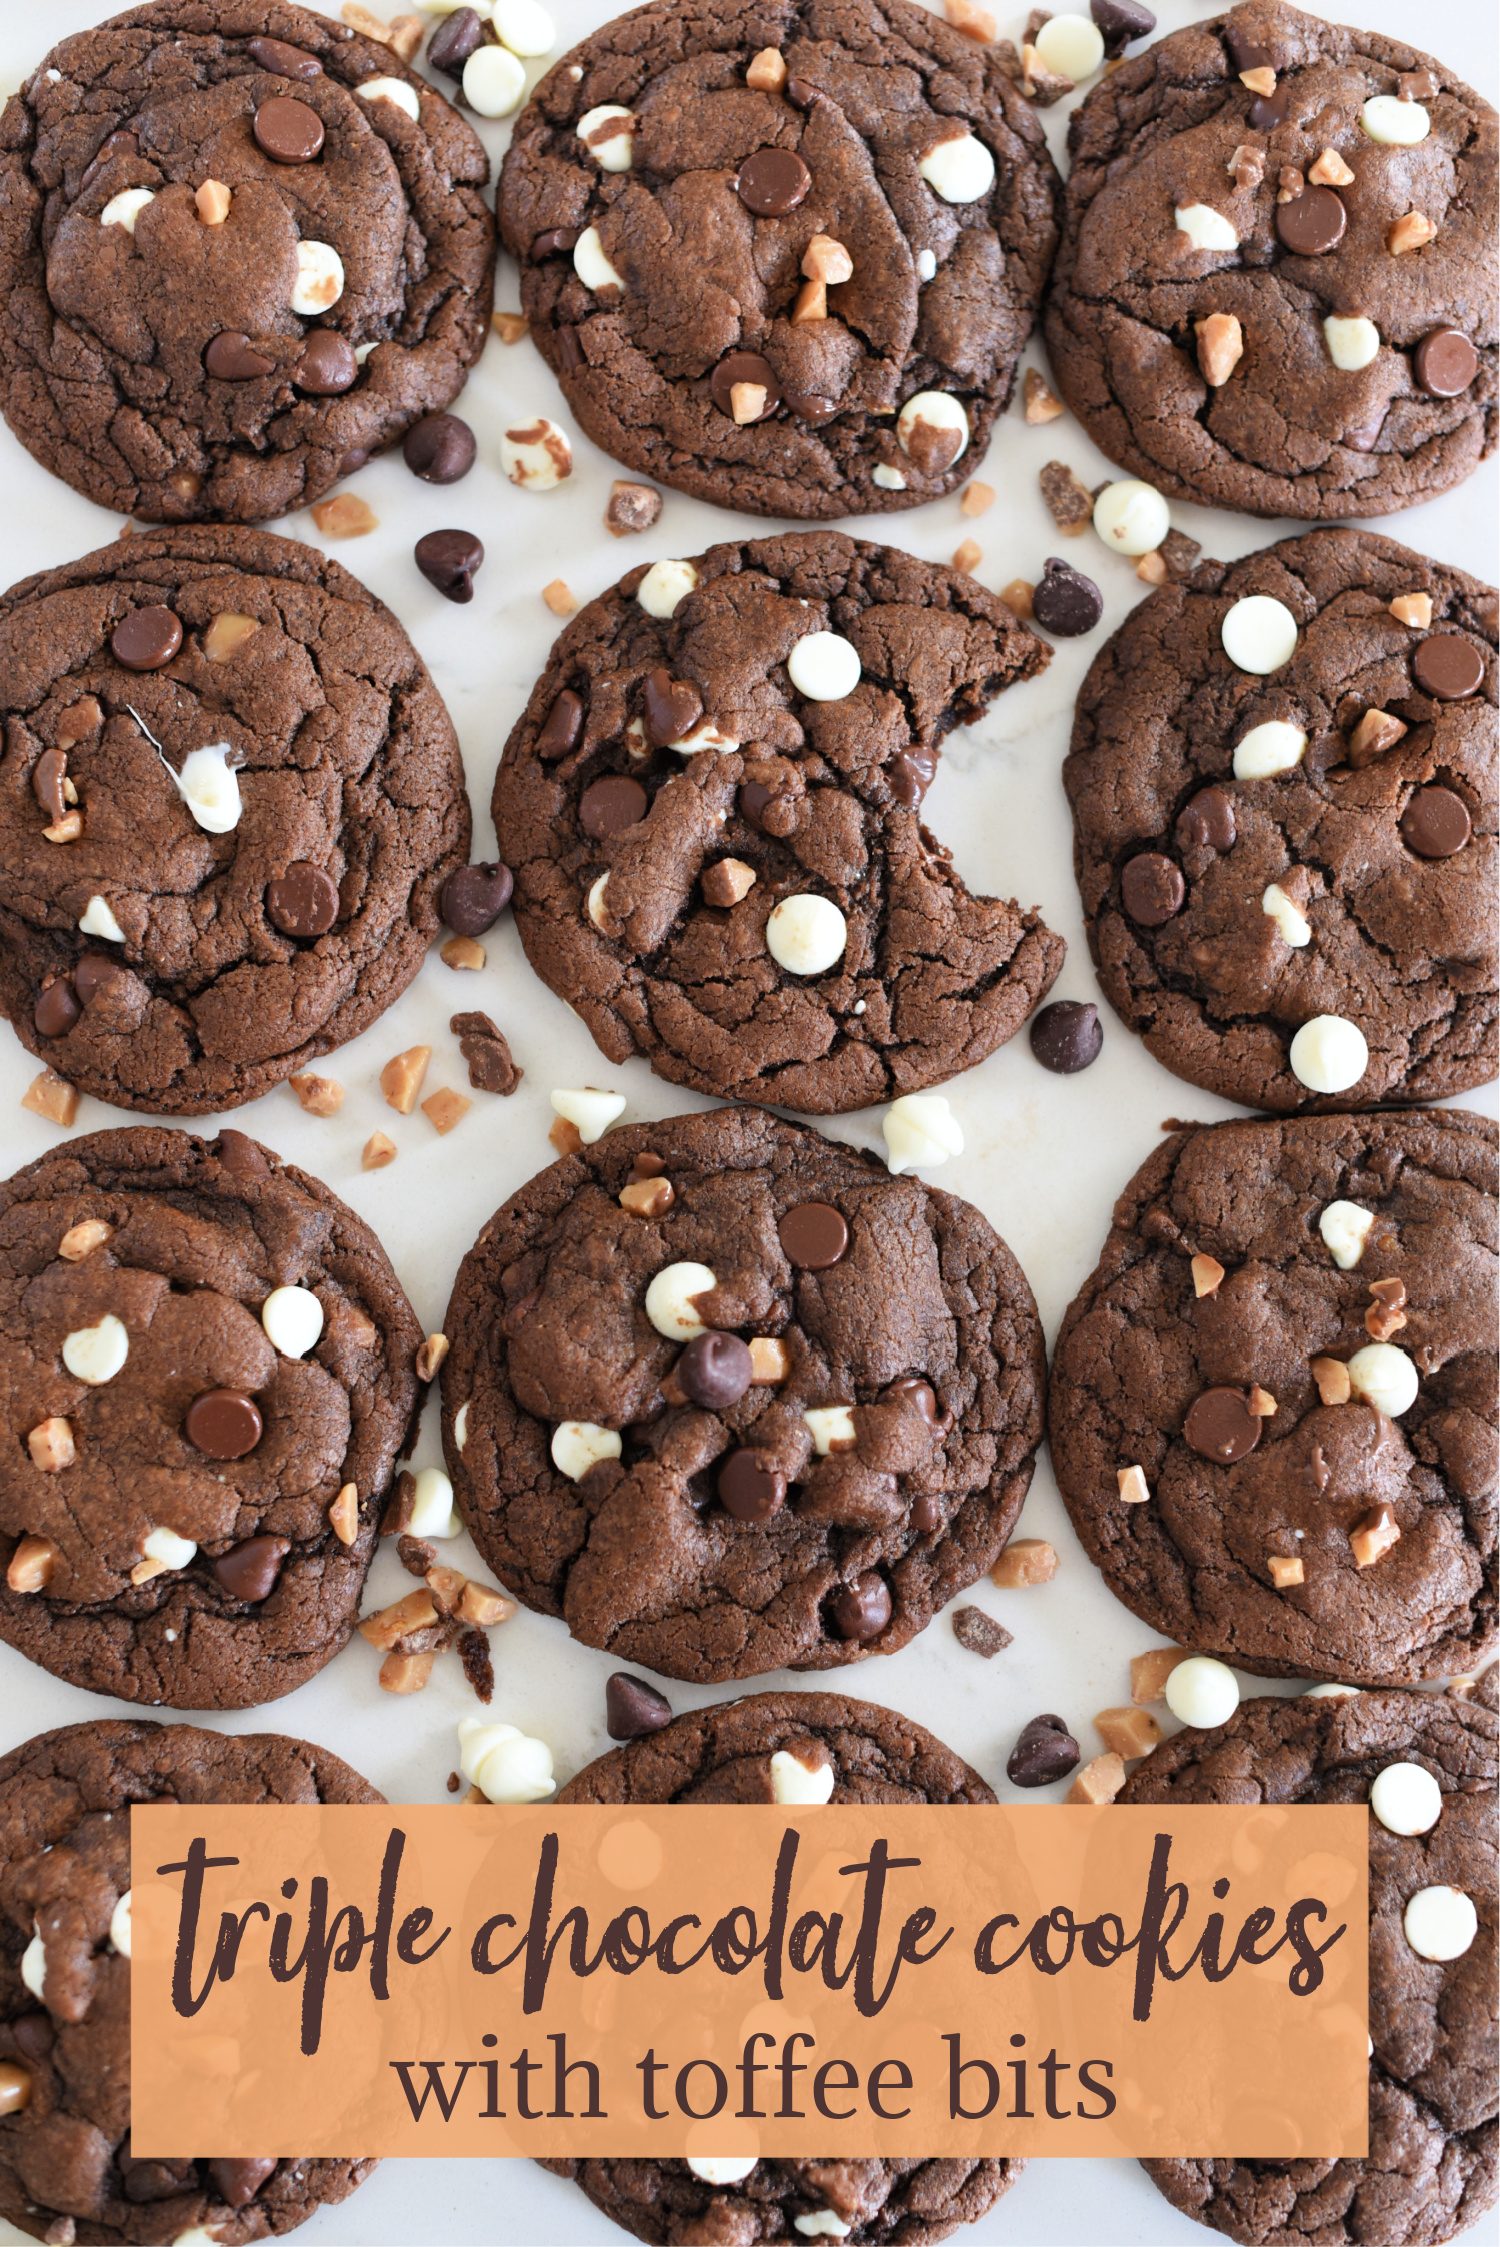 Triple Chocolate Cookies with Toffee Bits: Chocolate cookie recipe with white chips, chocolate chips, and toffee bits.